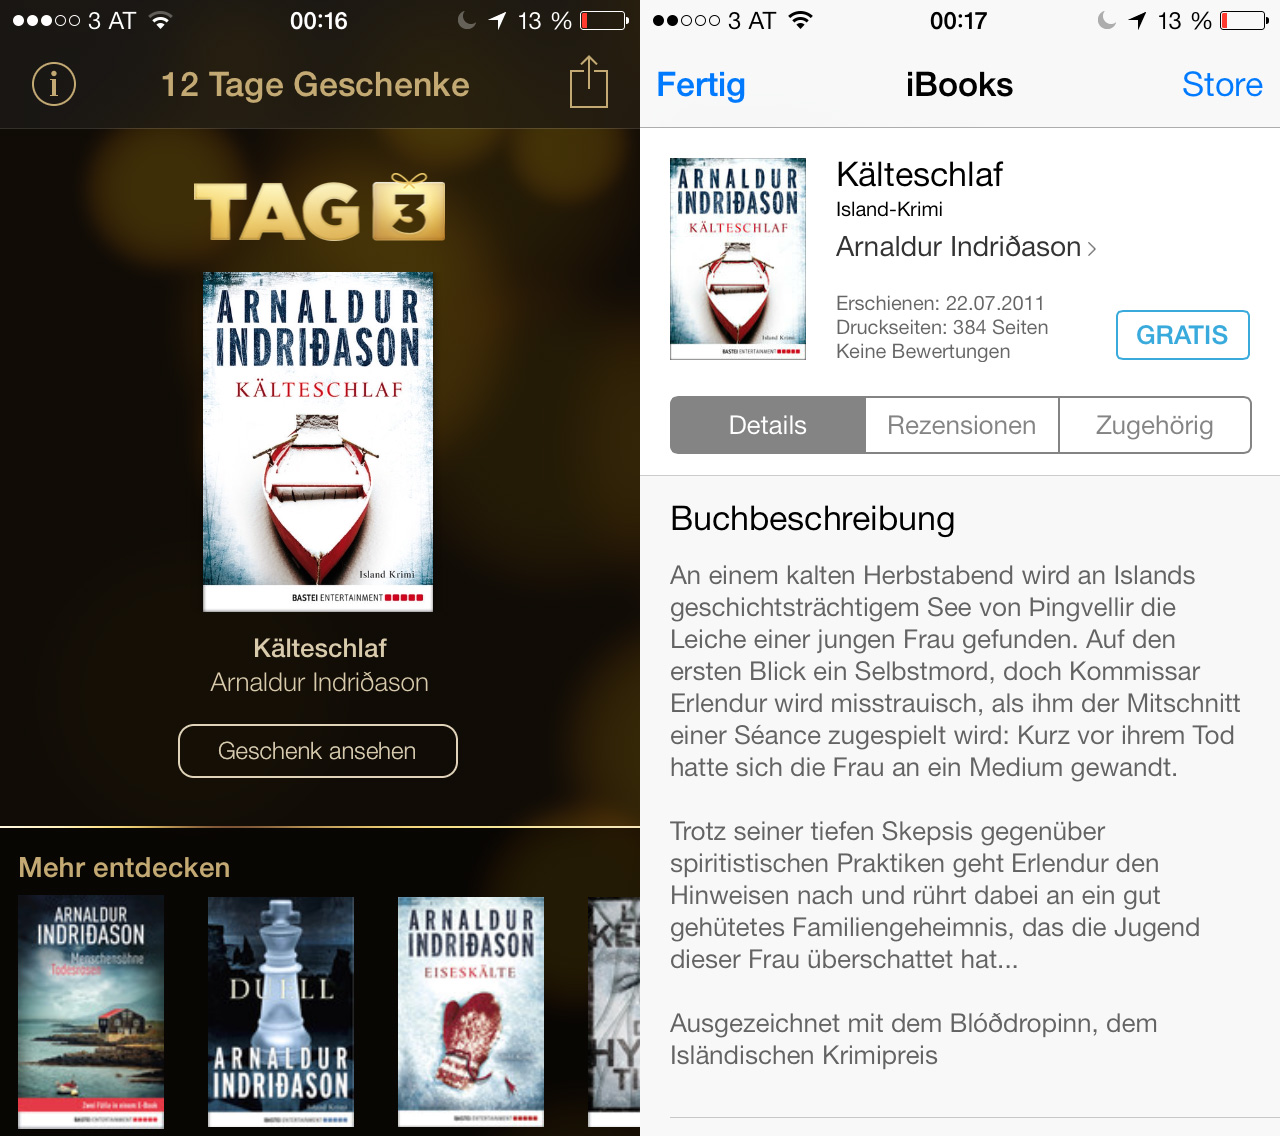 12 Tage Geschenke: Tag 03 – Kälteschlaf - Hack4Life - Immer aktuell